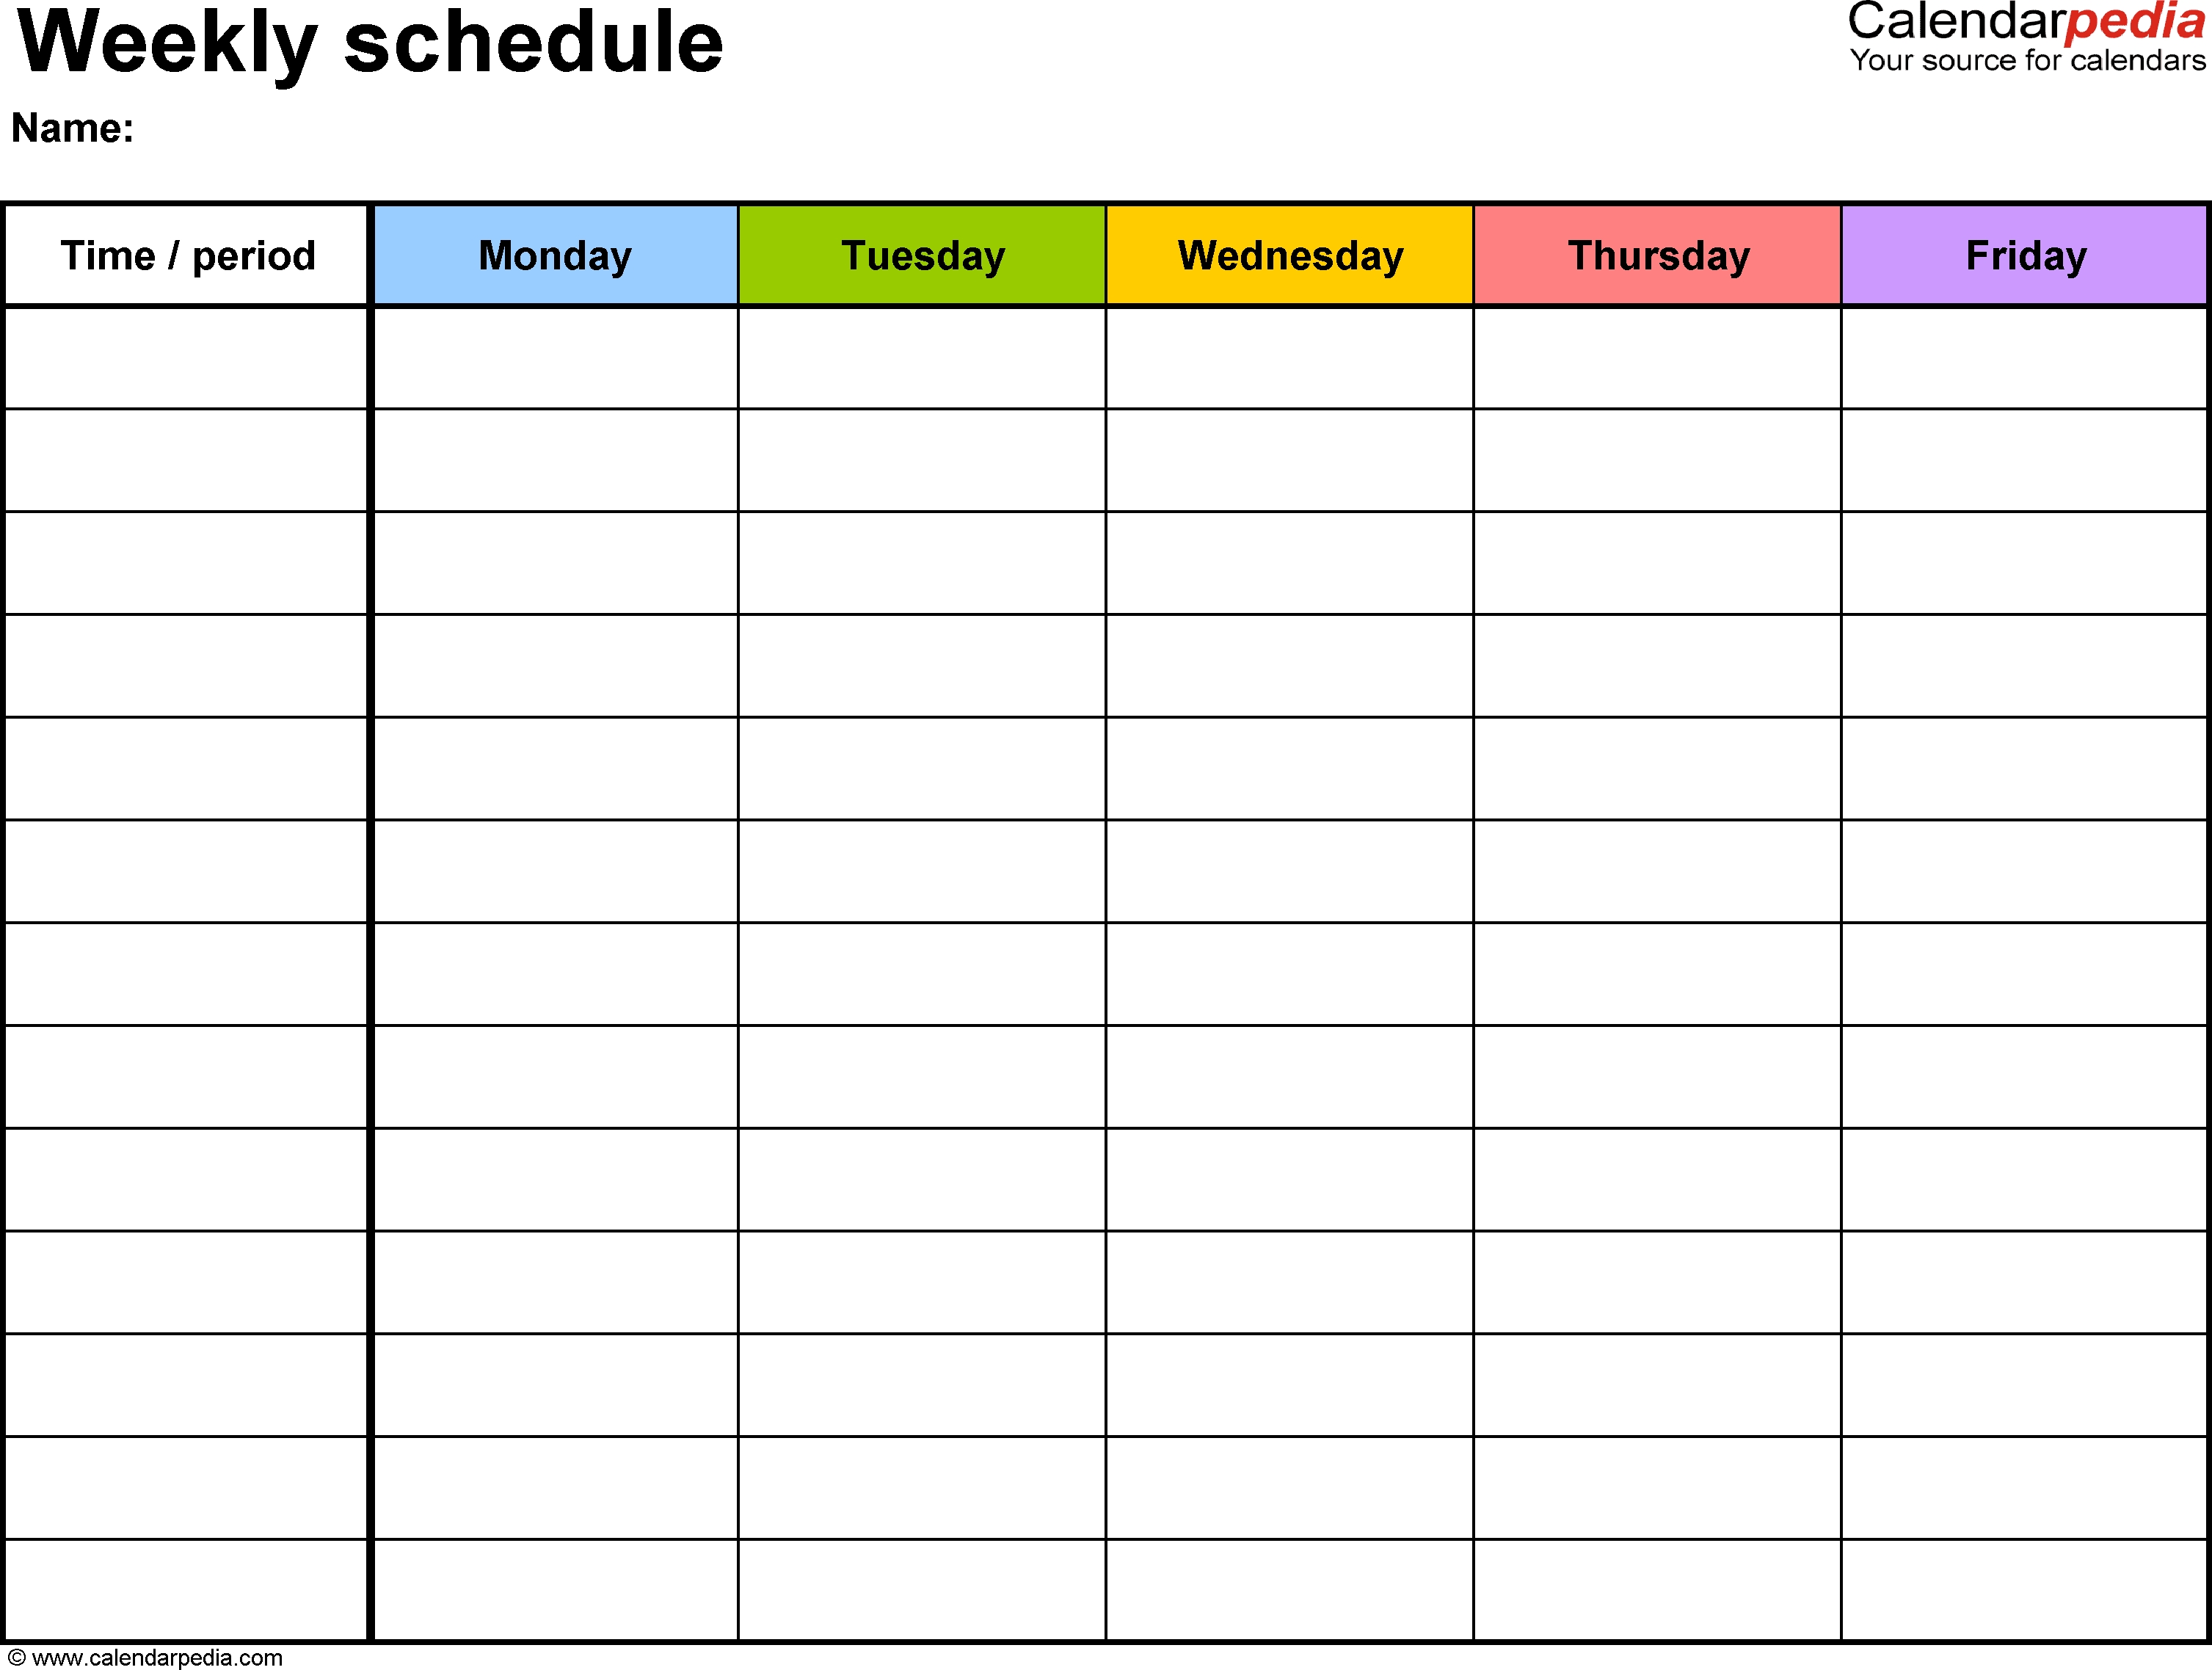 Free Weekly Schedule Templates For Excel - 18 Templates in 2 Week Schedule Template Mon- Sunday